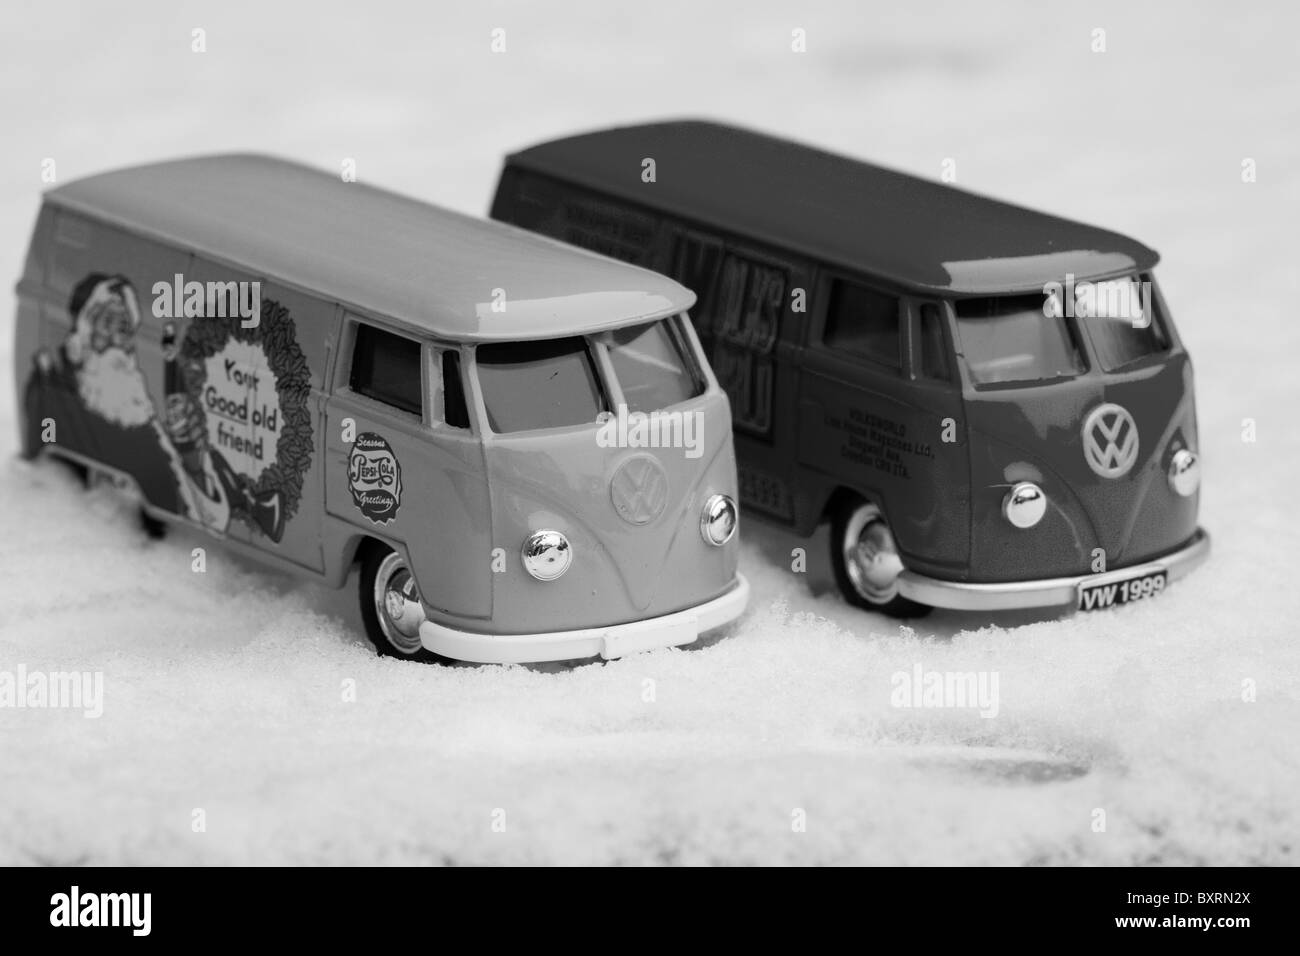 Children's collectible toy models of  Volkswagen split screen panel vans on Snow Black and White - Stock Image